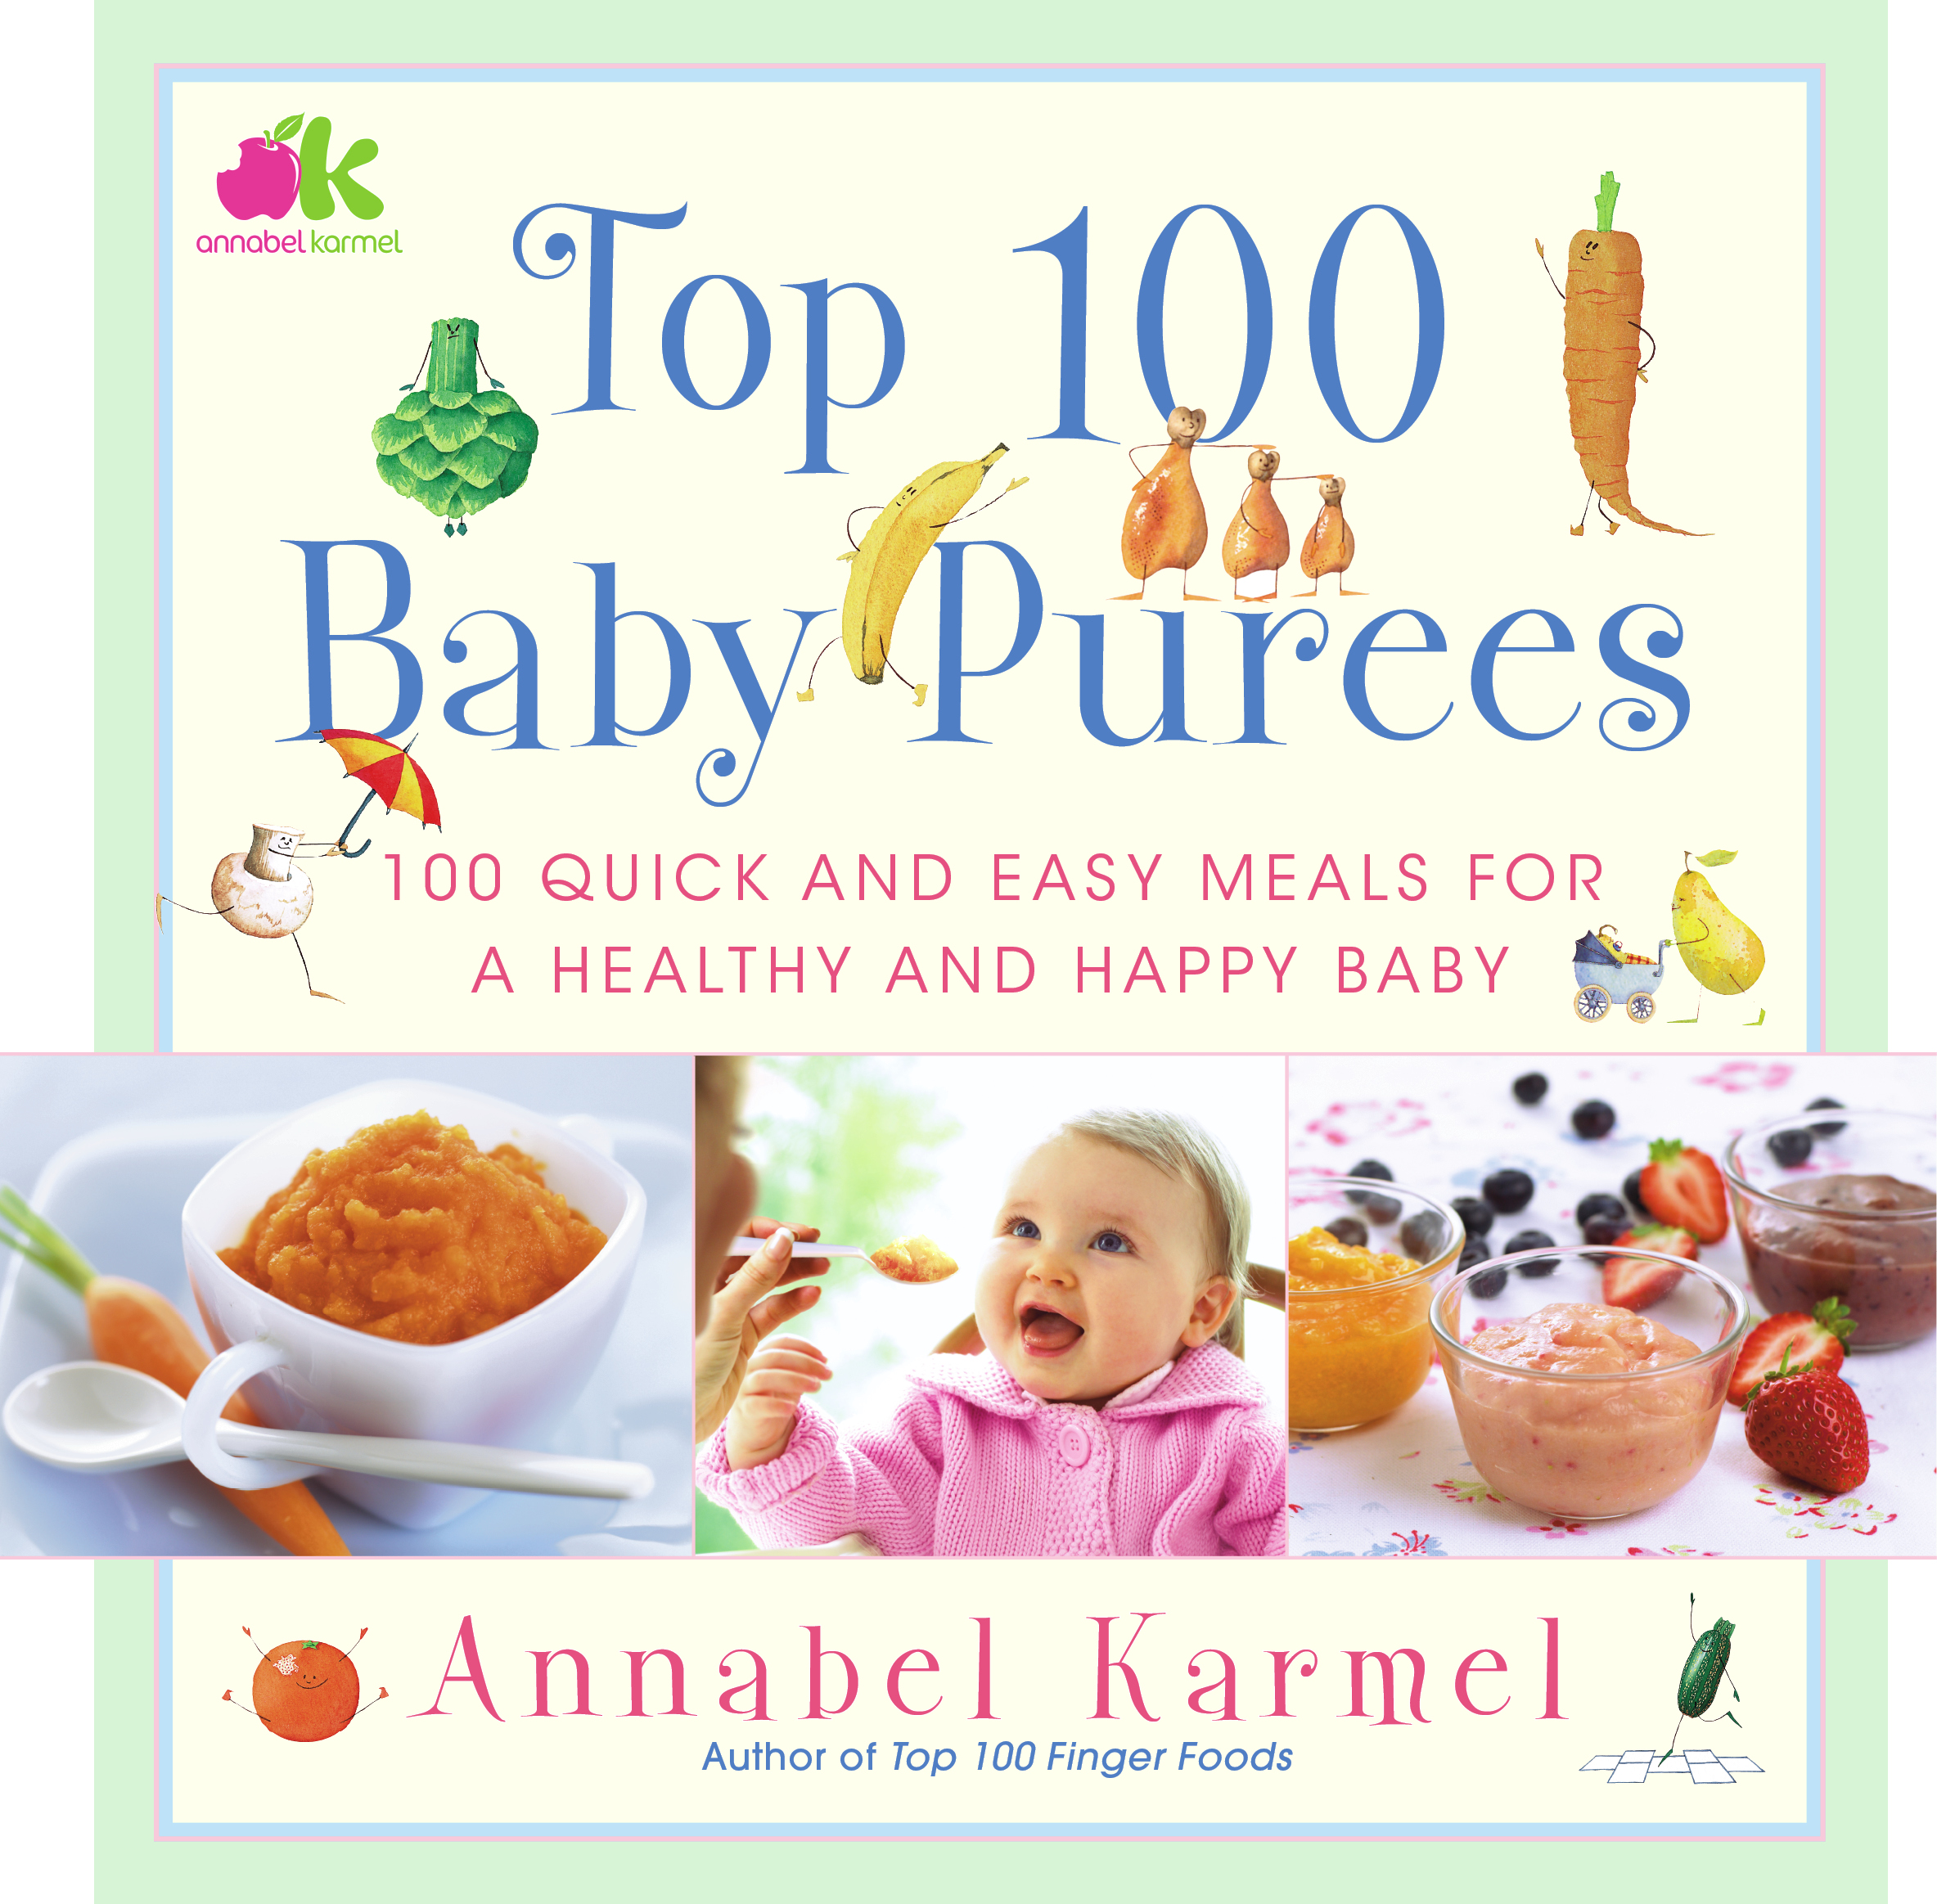 Top 100 baby purees book by annabel karmel official publisher book cover image jpg top 100 baby purees forumfinder Images